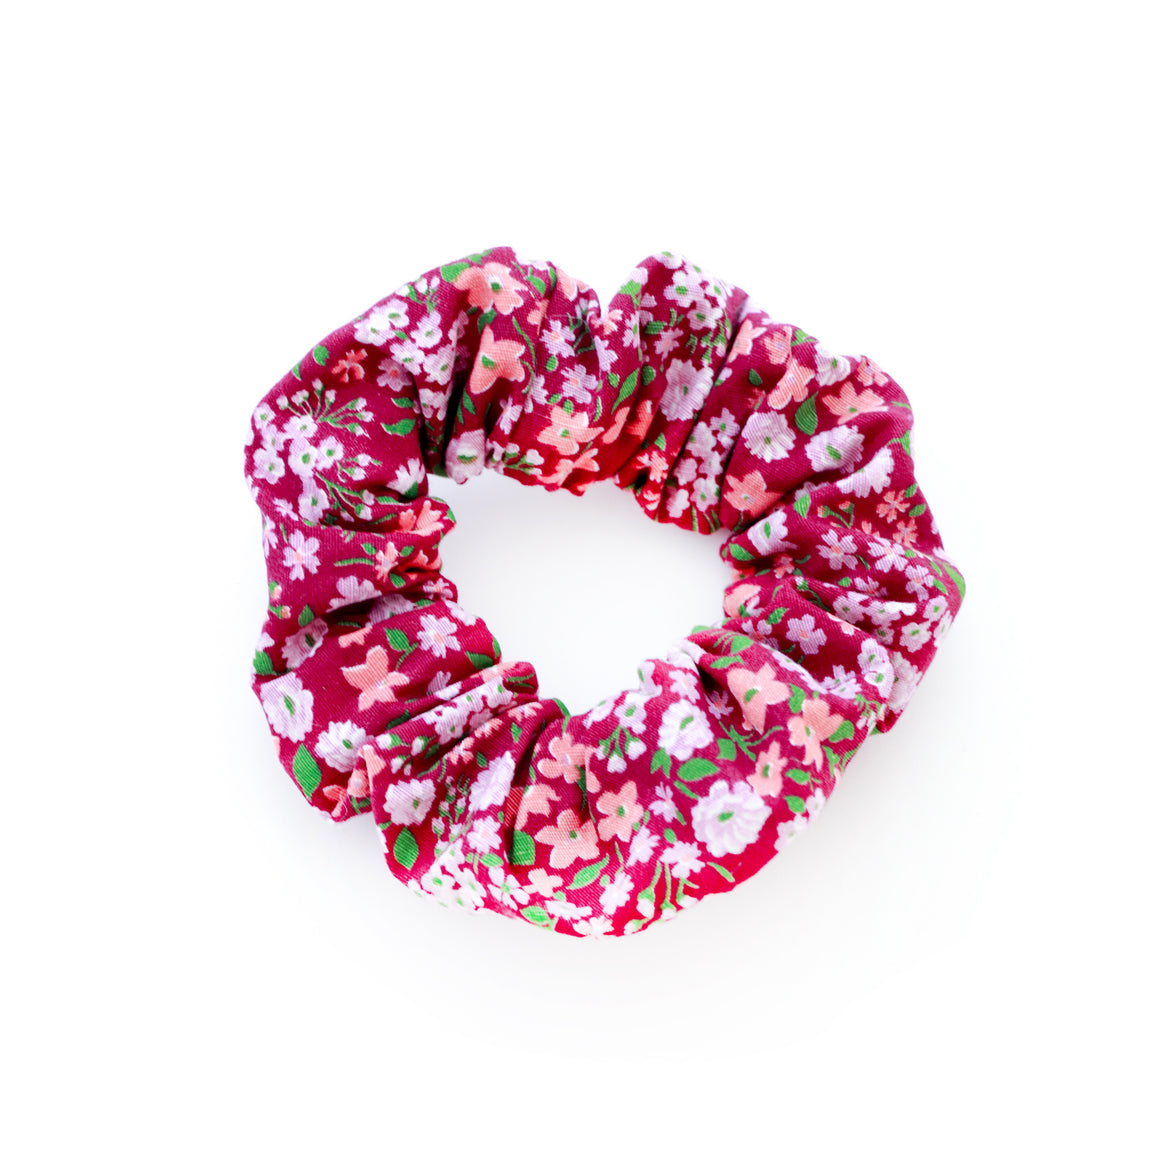 plum floral scrunchie made out of vintage fabric from the 1950s